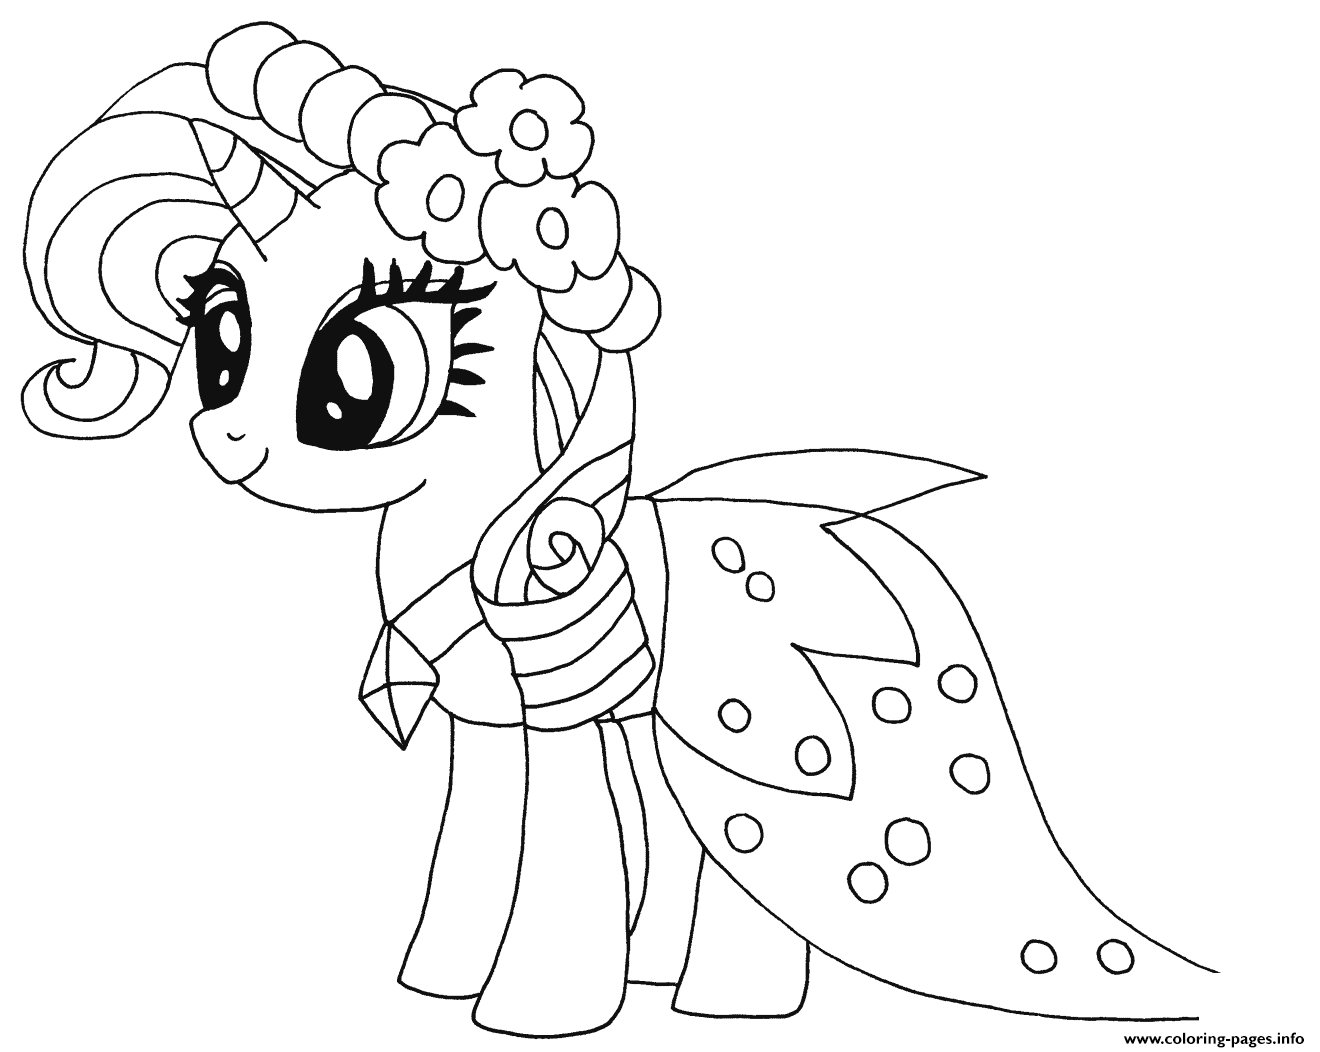 Print princess rarity my little pony coloring pages | My little Pony ...